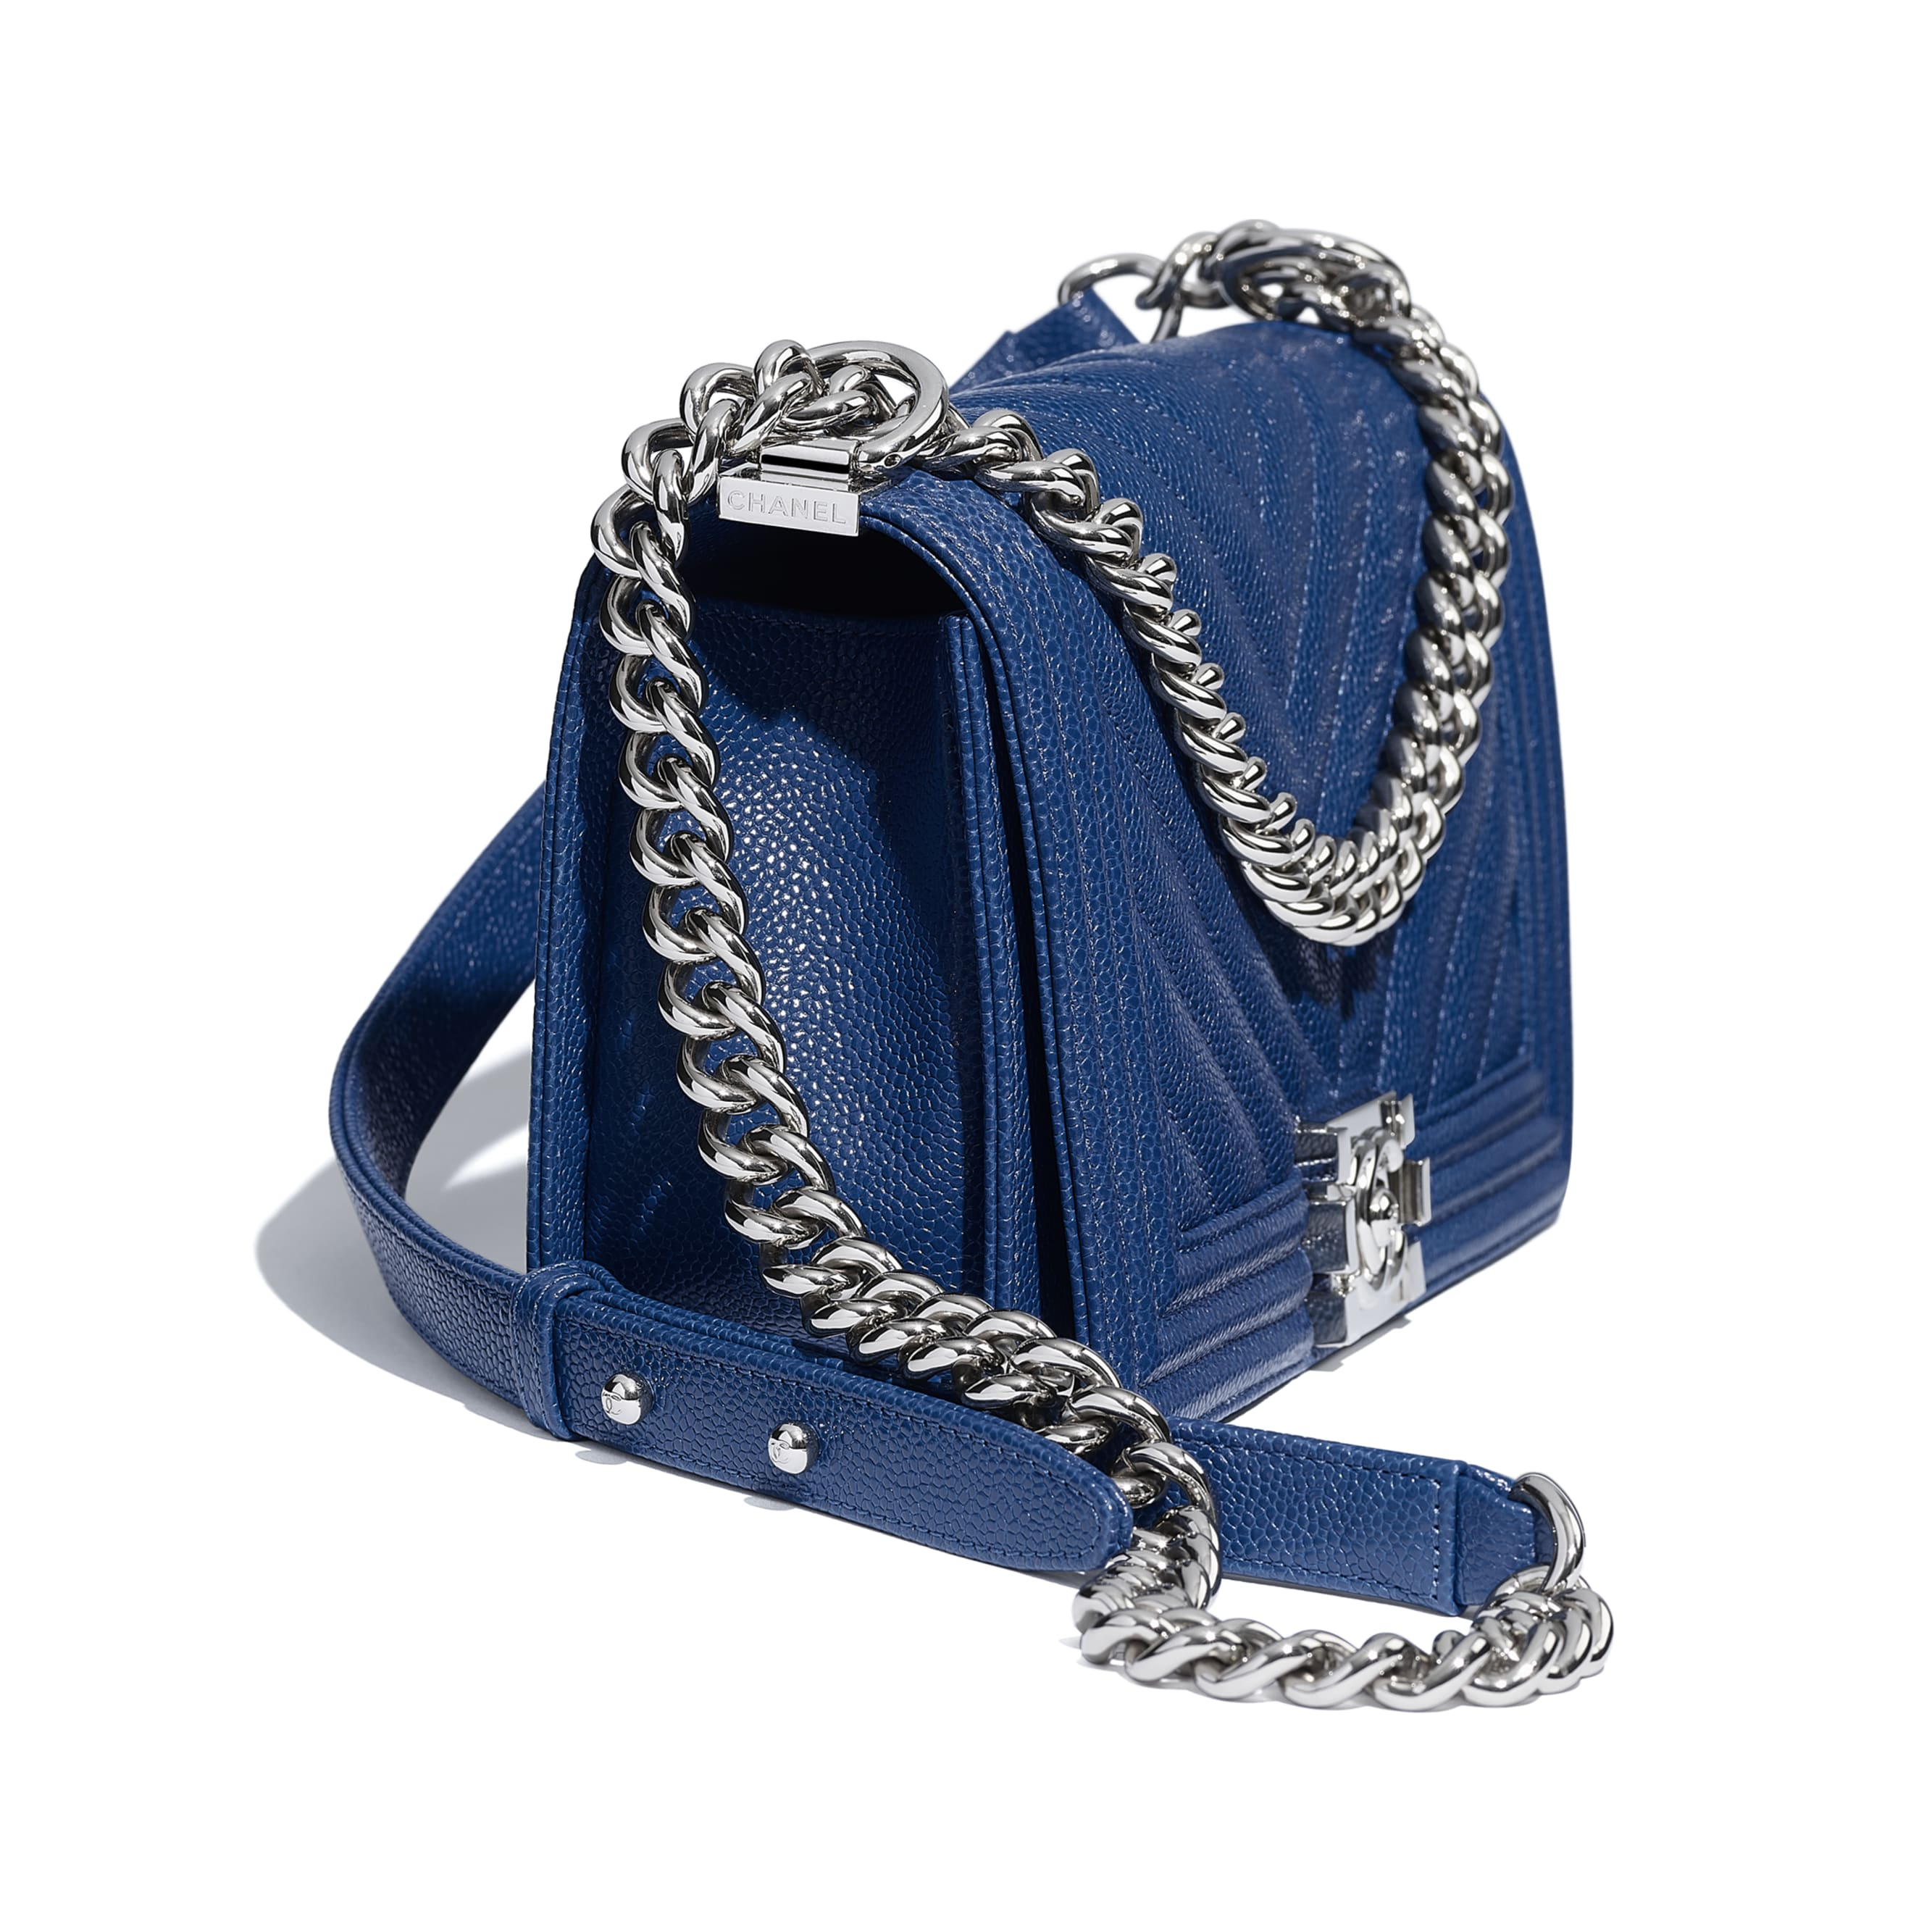 BOY CHANEL Handbag - Dark Blue - Grained Calfskin & Silver Metal - Extra view - see standard sized version